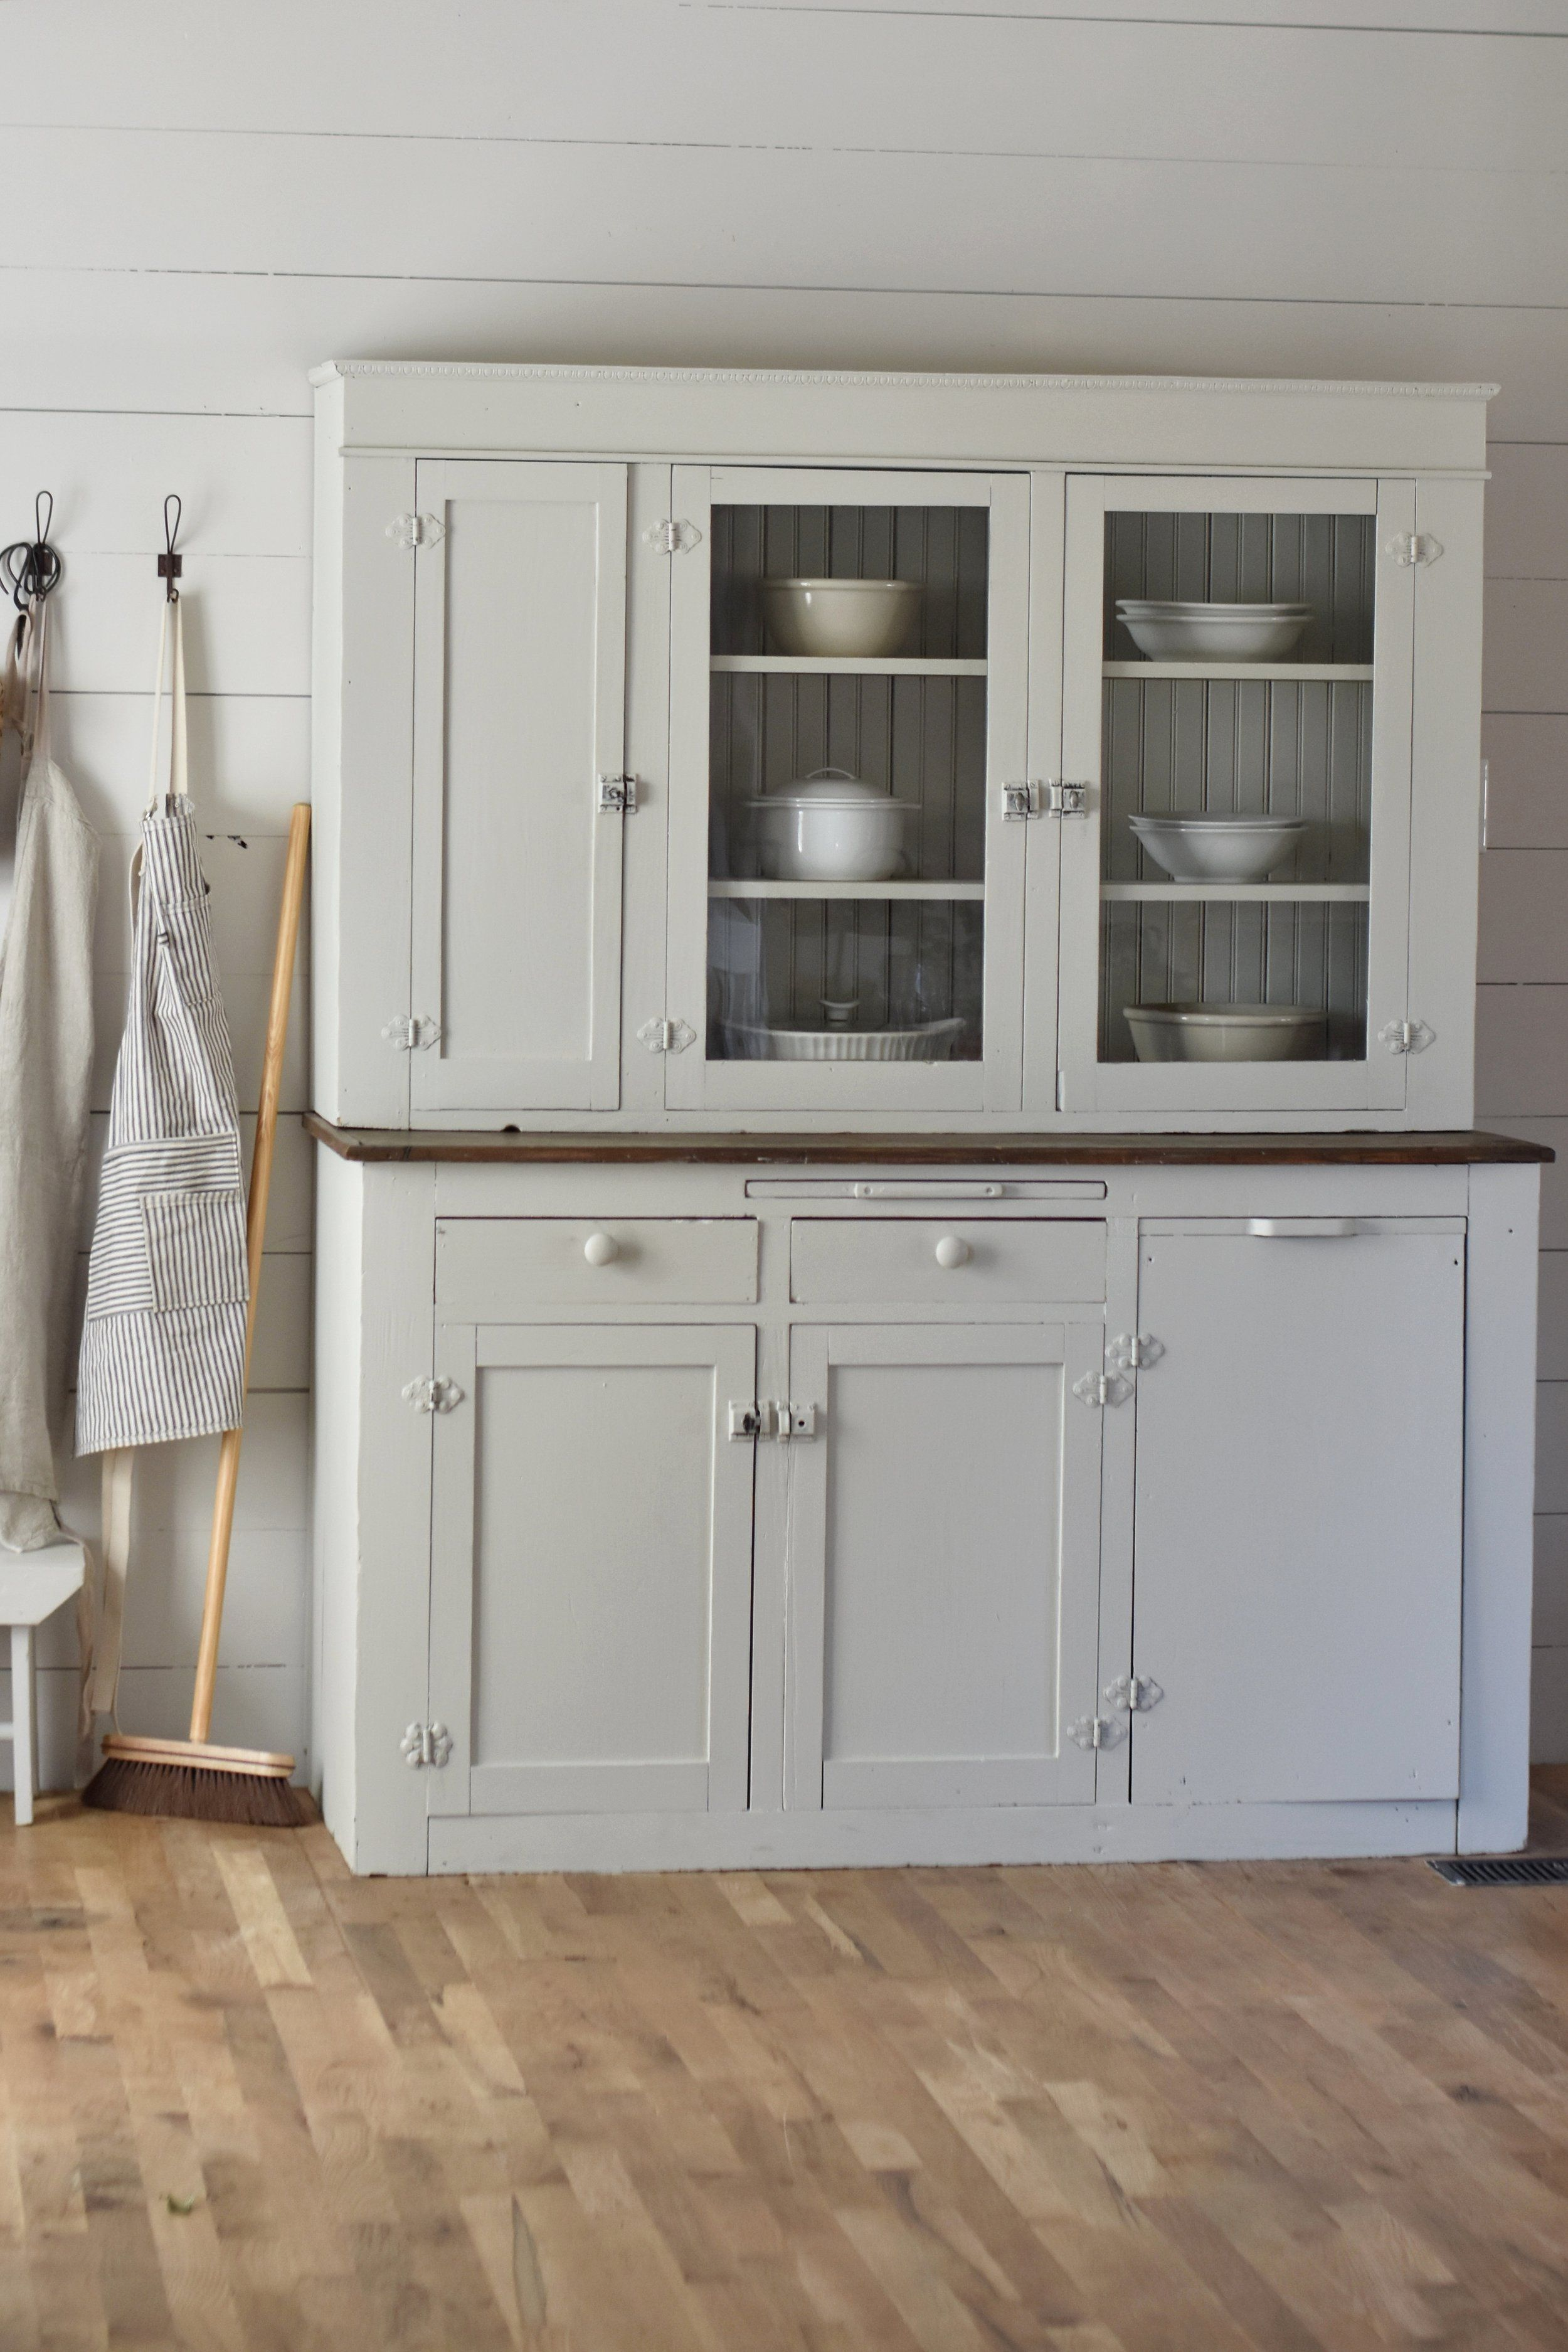 Farmhouse Style Cabinet Makeover | Home Decor that I love | Pinterest